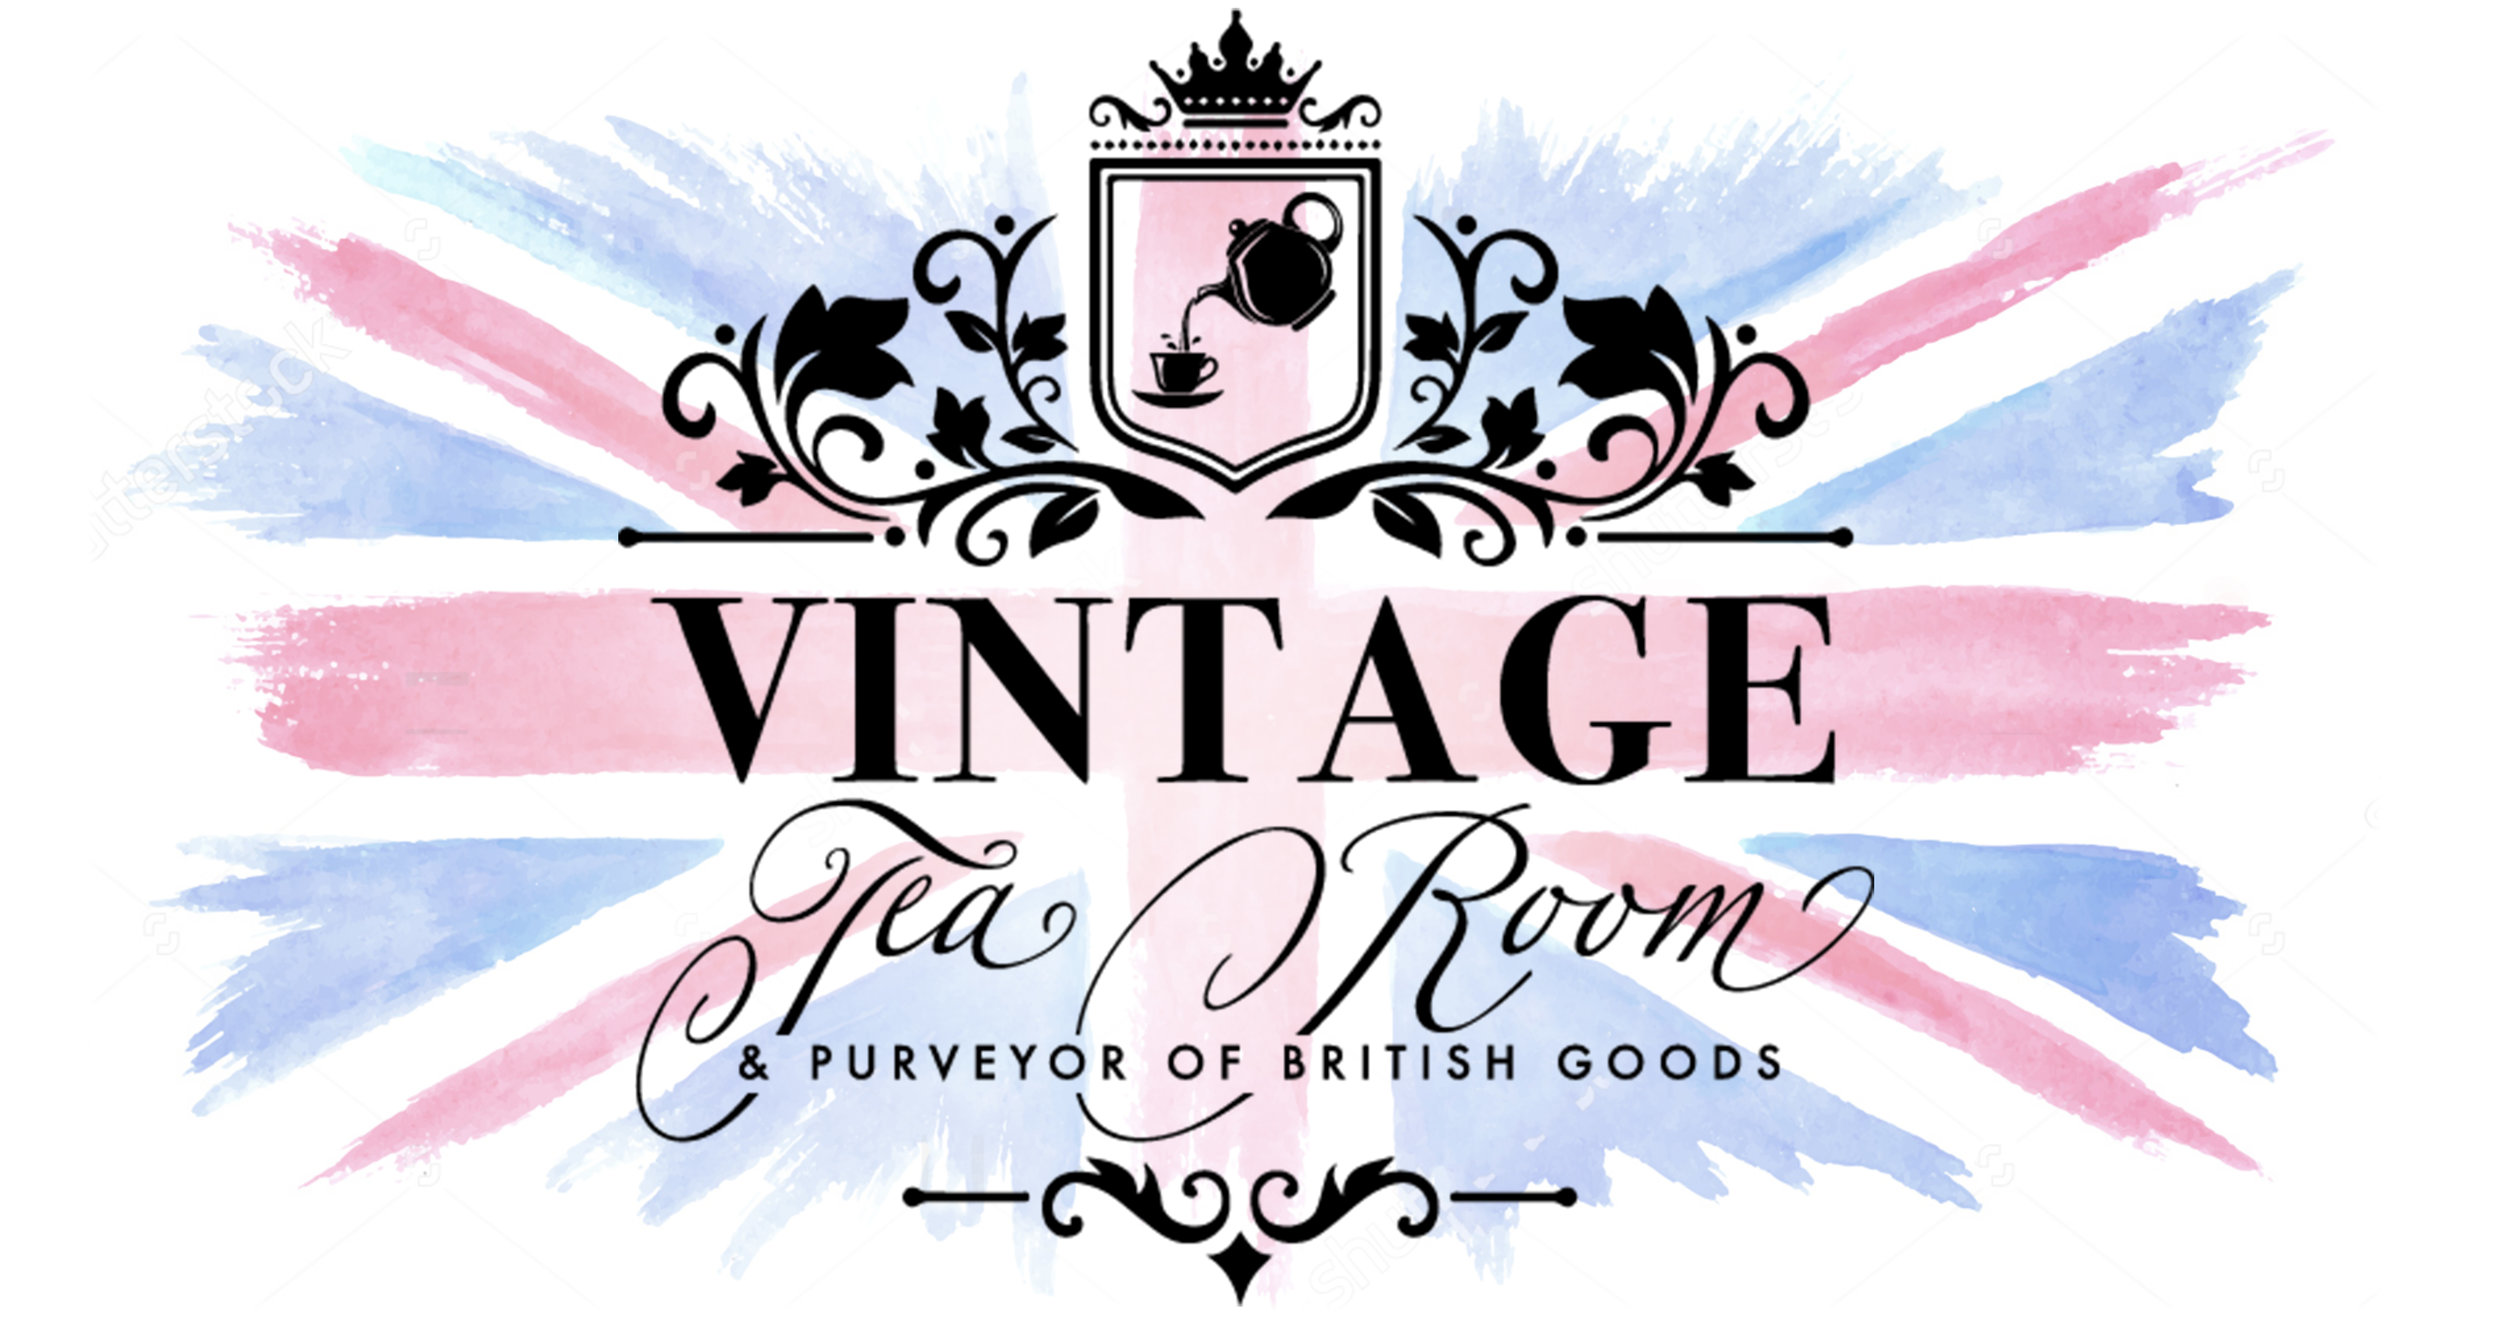 Vintage-Tea-Room-W-Union-Jack.jpg